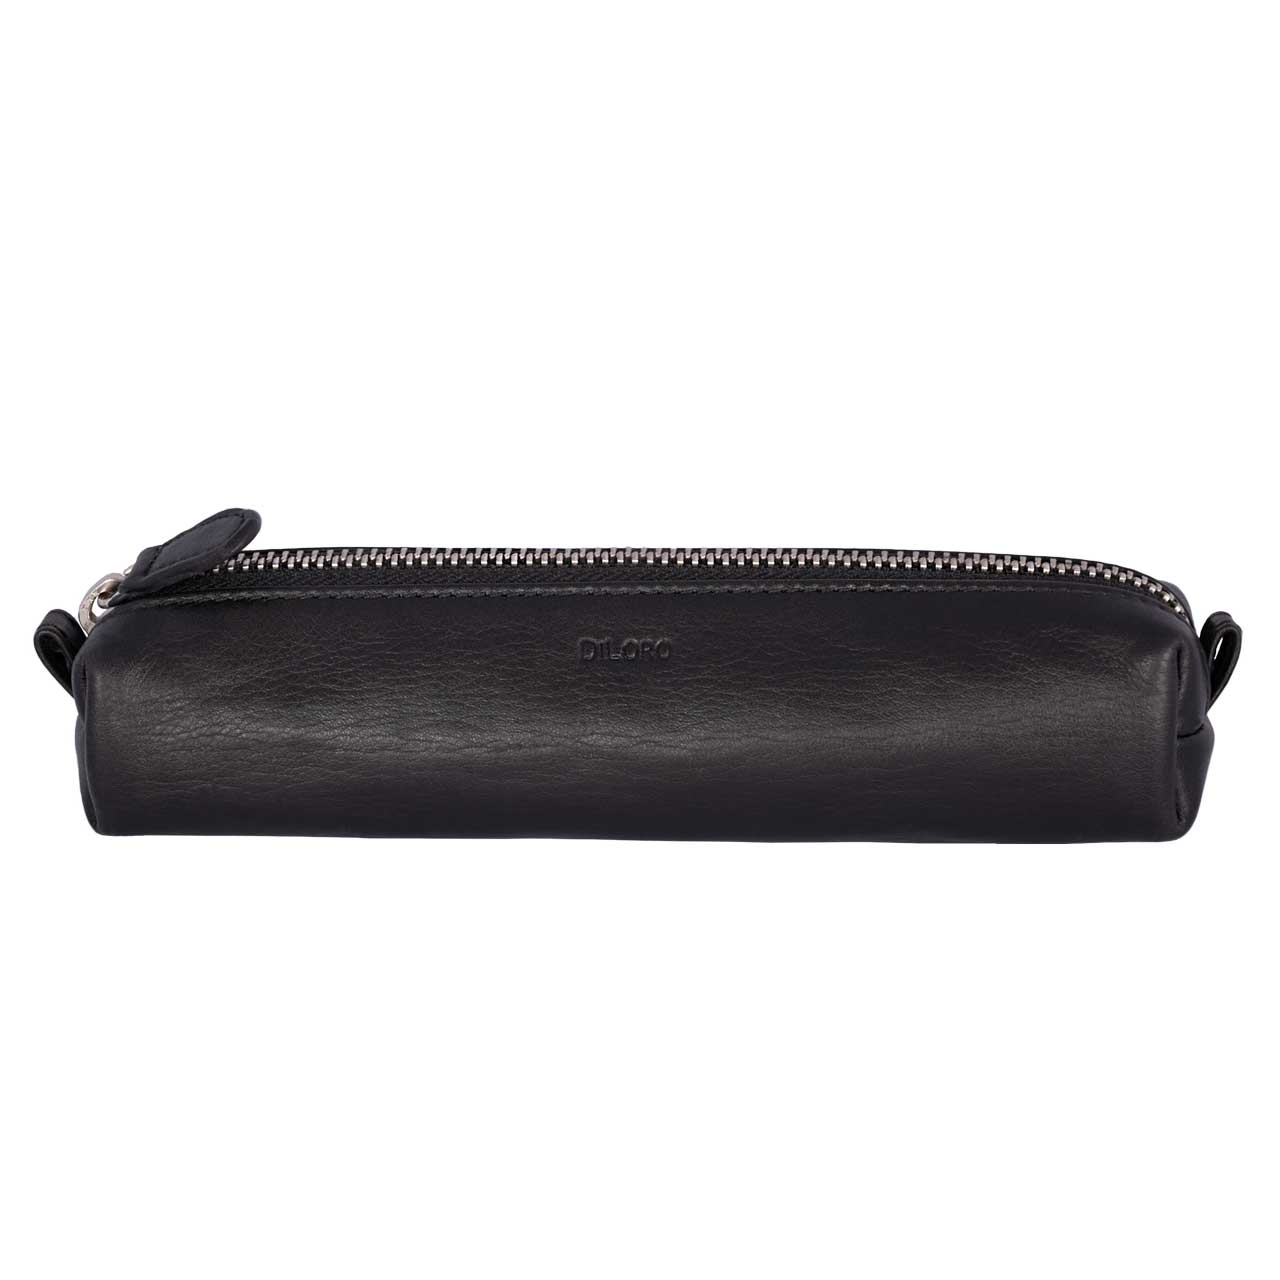 Multi-Purpose Zippered Leather Pen Pencil Case in Various Colors - Black with DiLoro logo